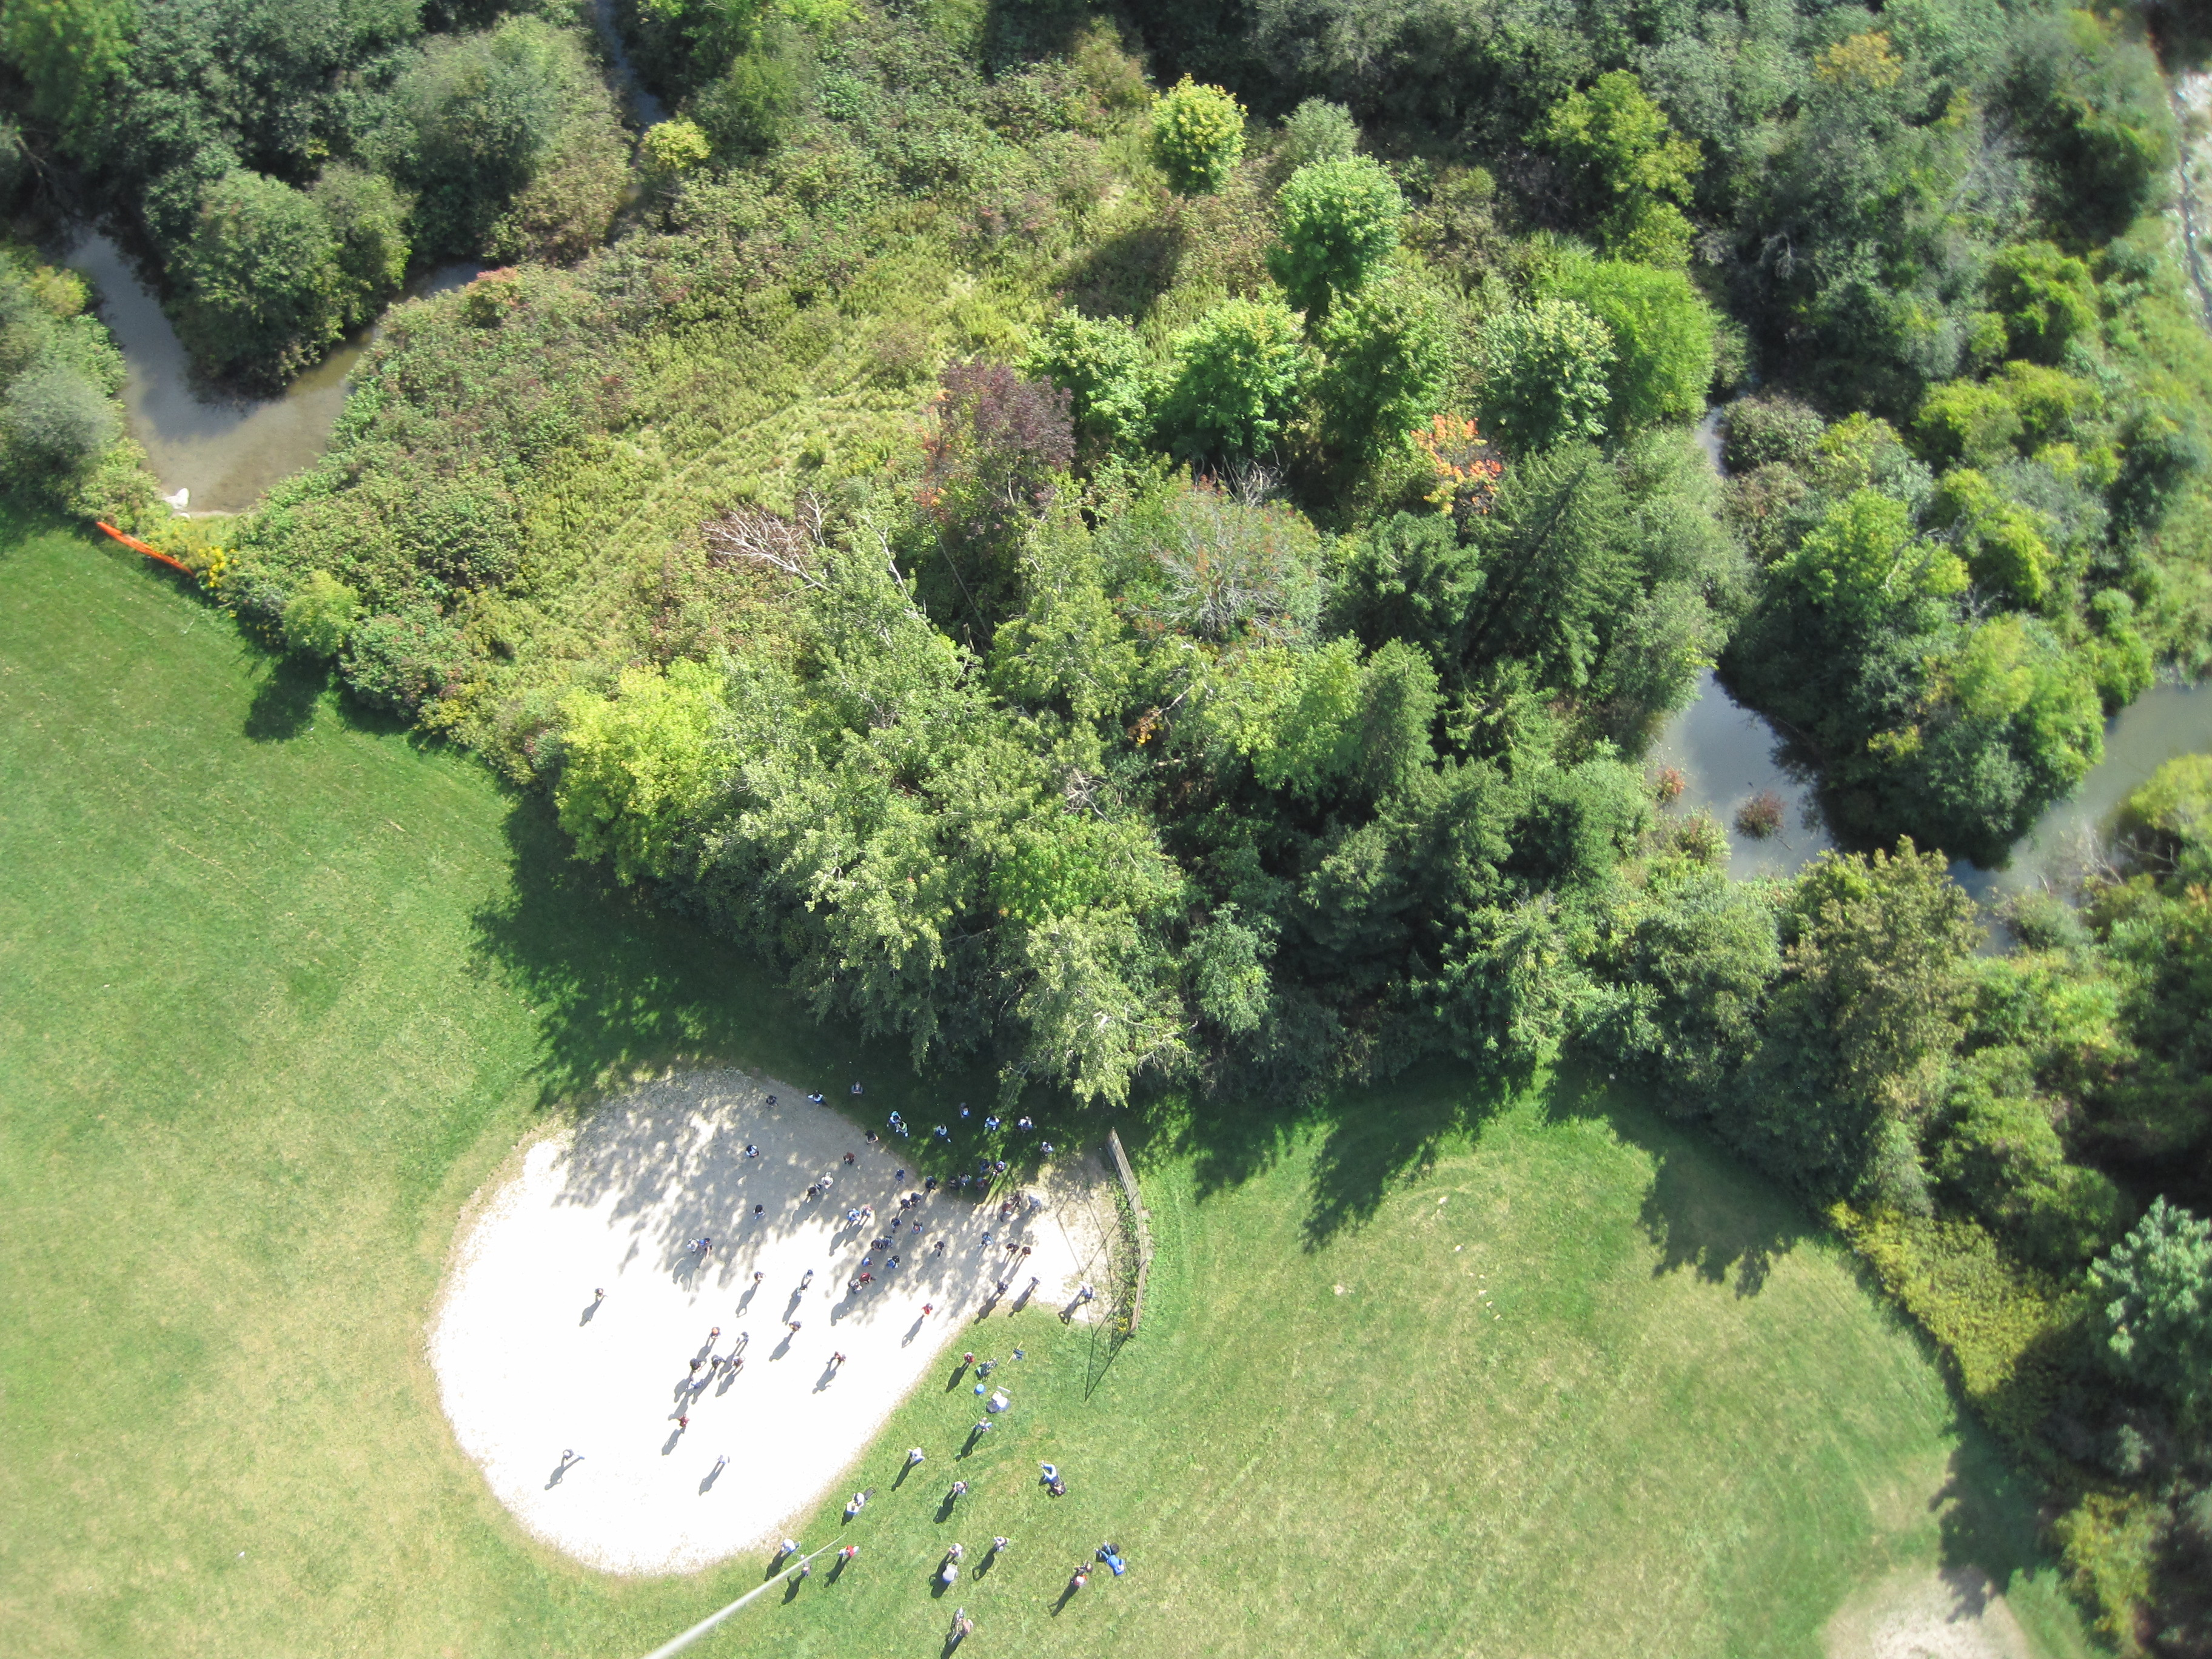 Georeferencing of Aerial Photos and Map Production (Balloon-acquired aerial photos)